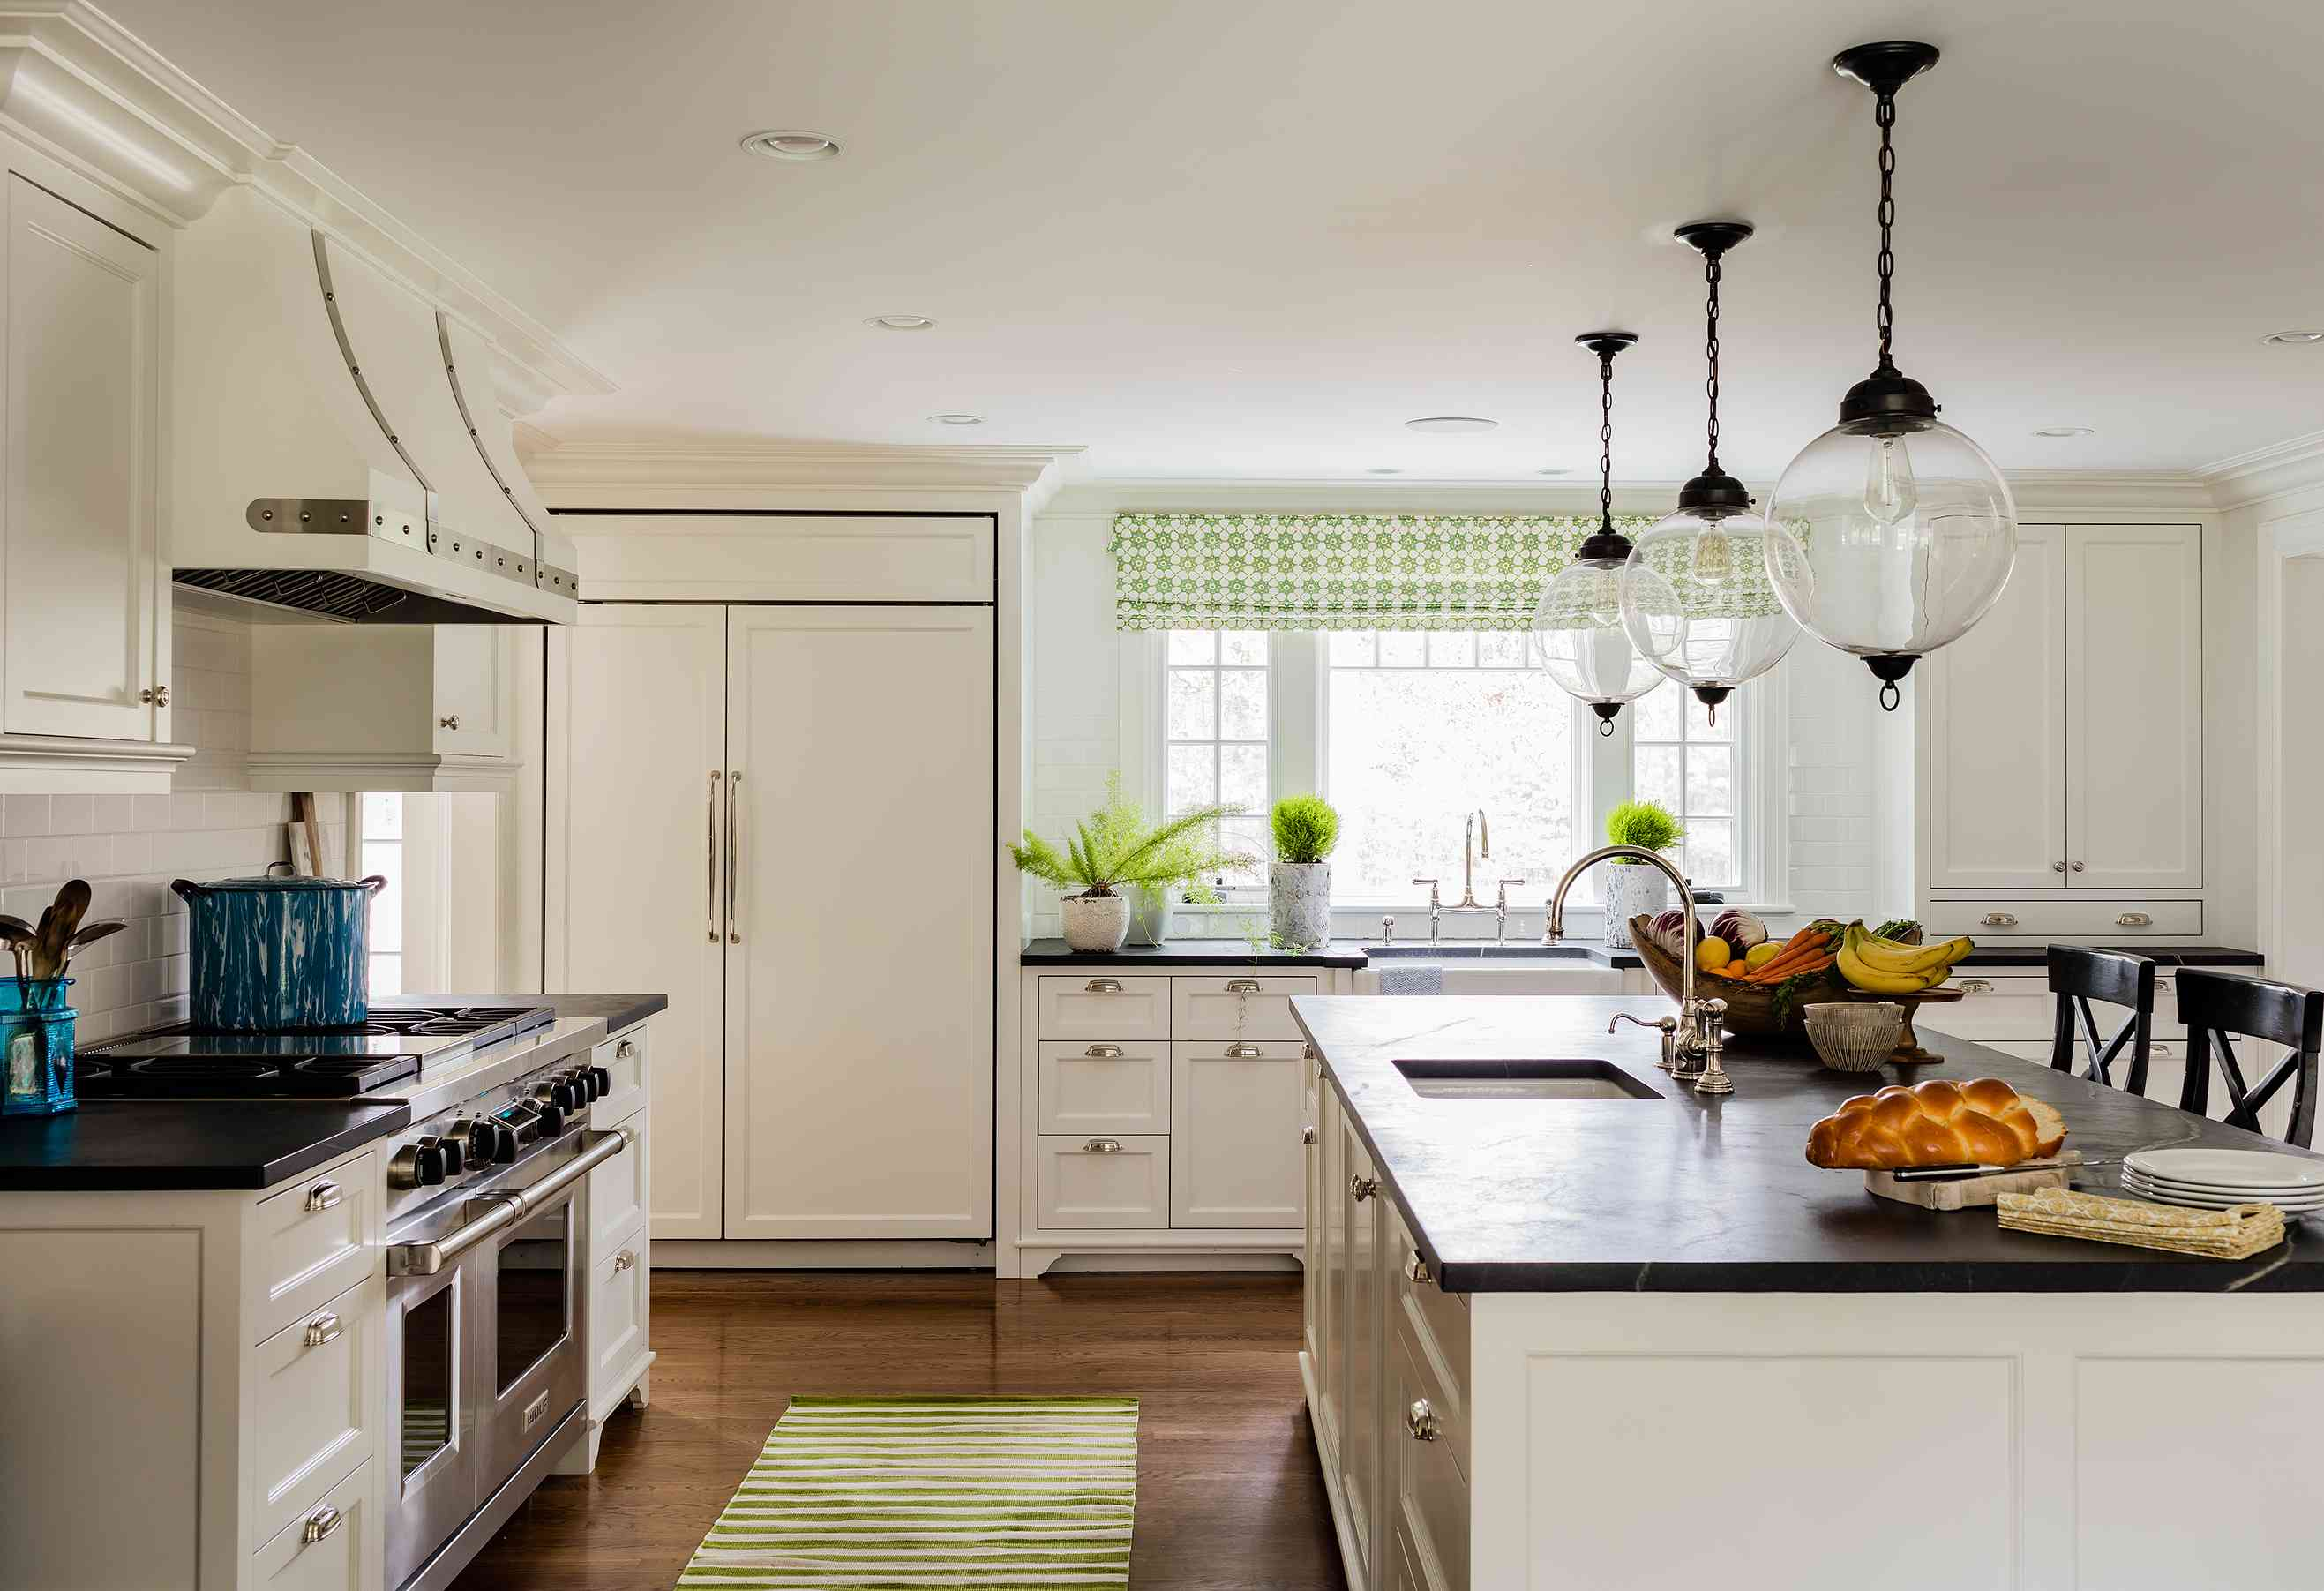 White kitchen with green gingham accents.